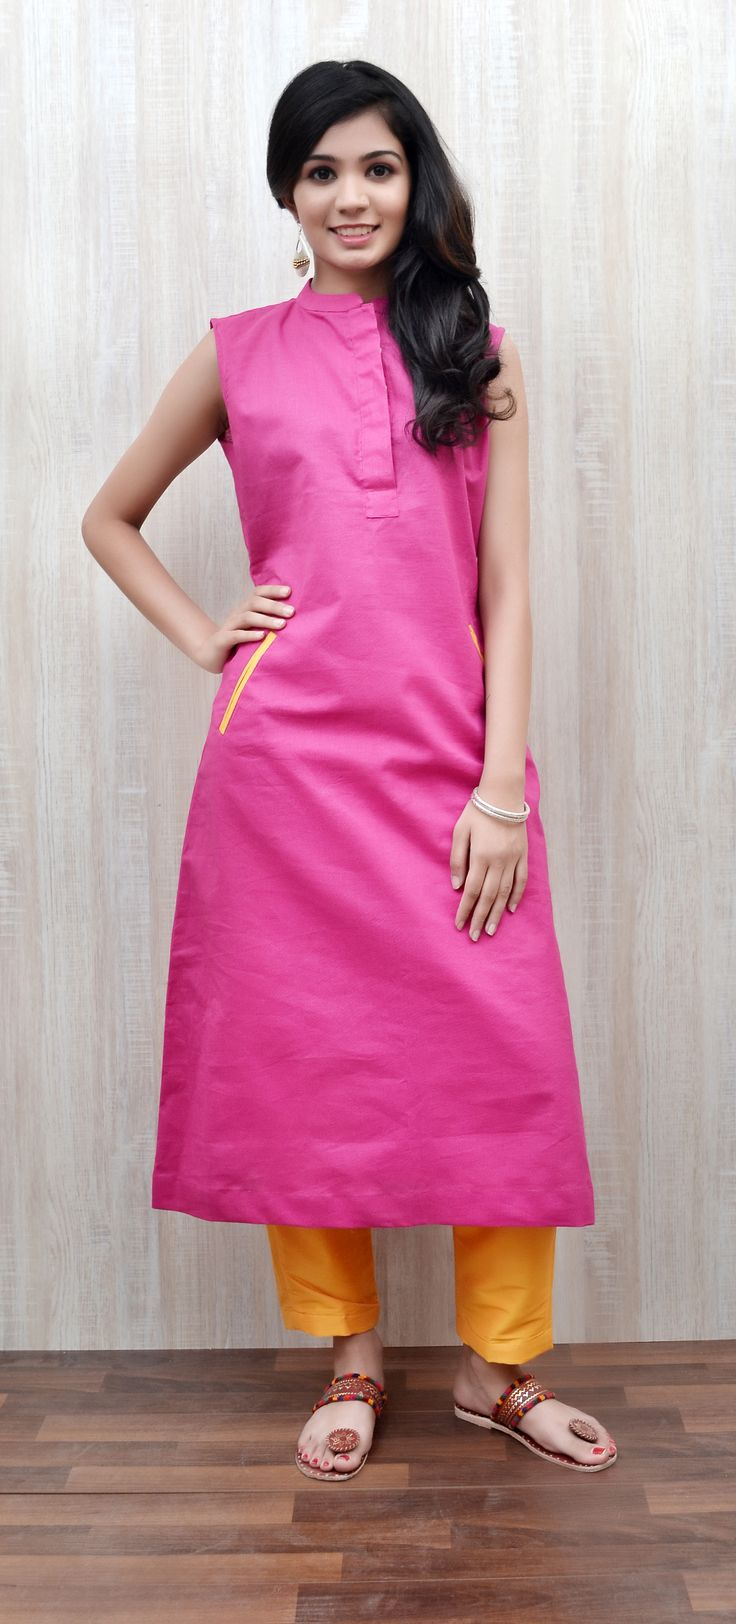 Zoyashi celebrates Friendships Day,take ideas what to gift your friend this Friendships Day! Gift your friend this beautiful Pink kurta.